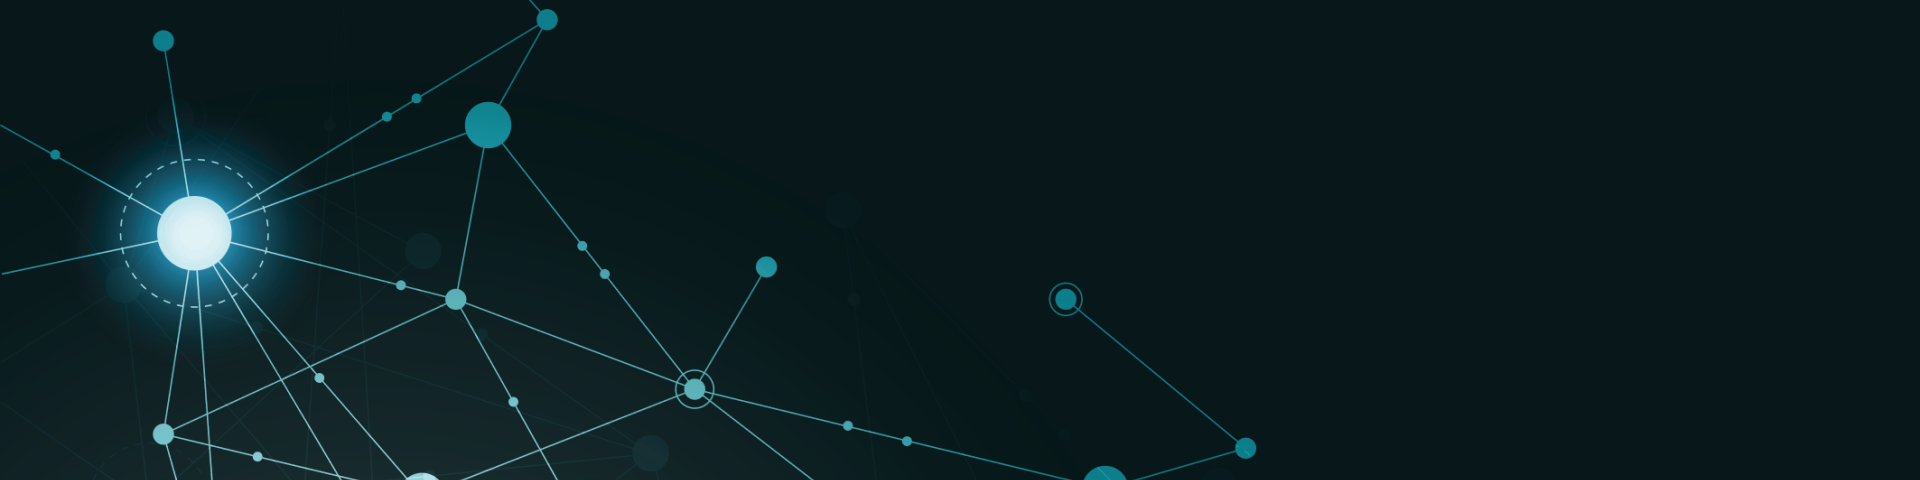 connected service 1920x480